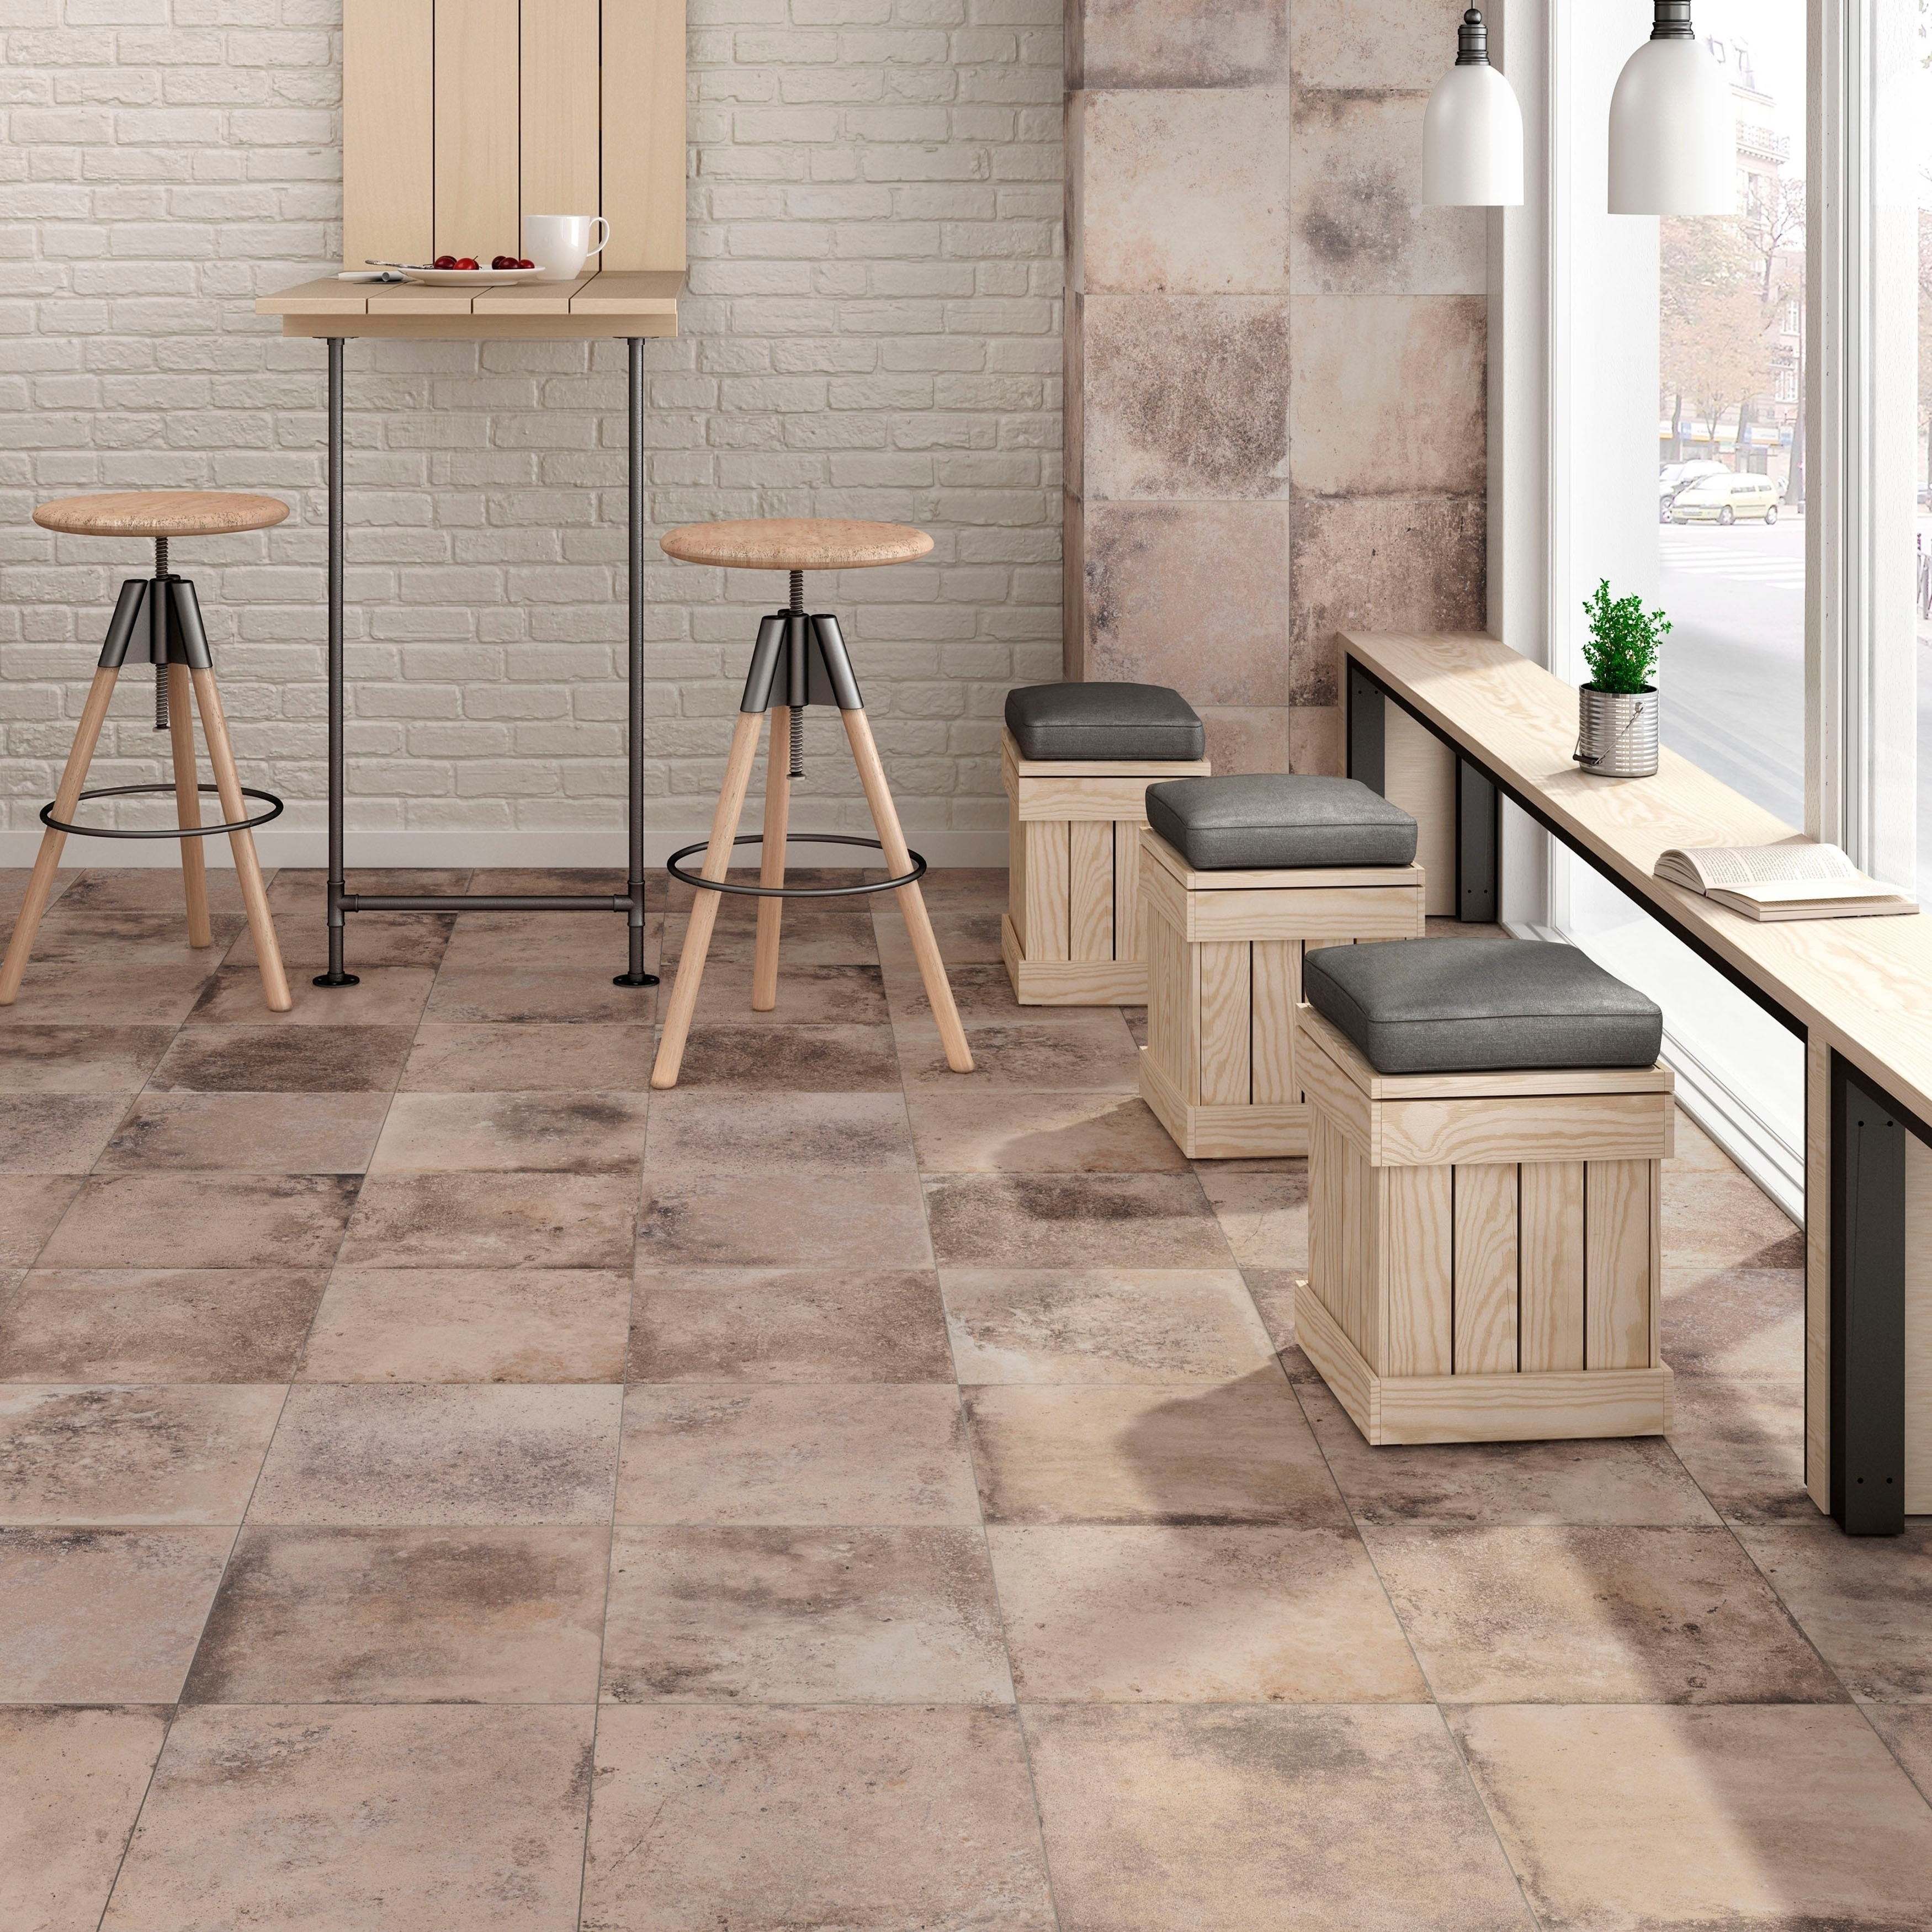 Somertile 11 875x11 875 Inch Ventila Beige Porcelain Floor And Wall Tile 12 Tiles 26 Sqft Free Shipping Today 12064676